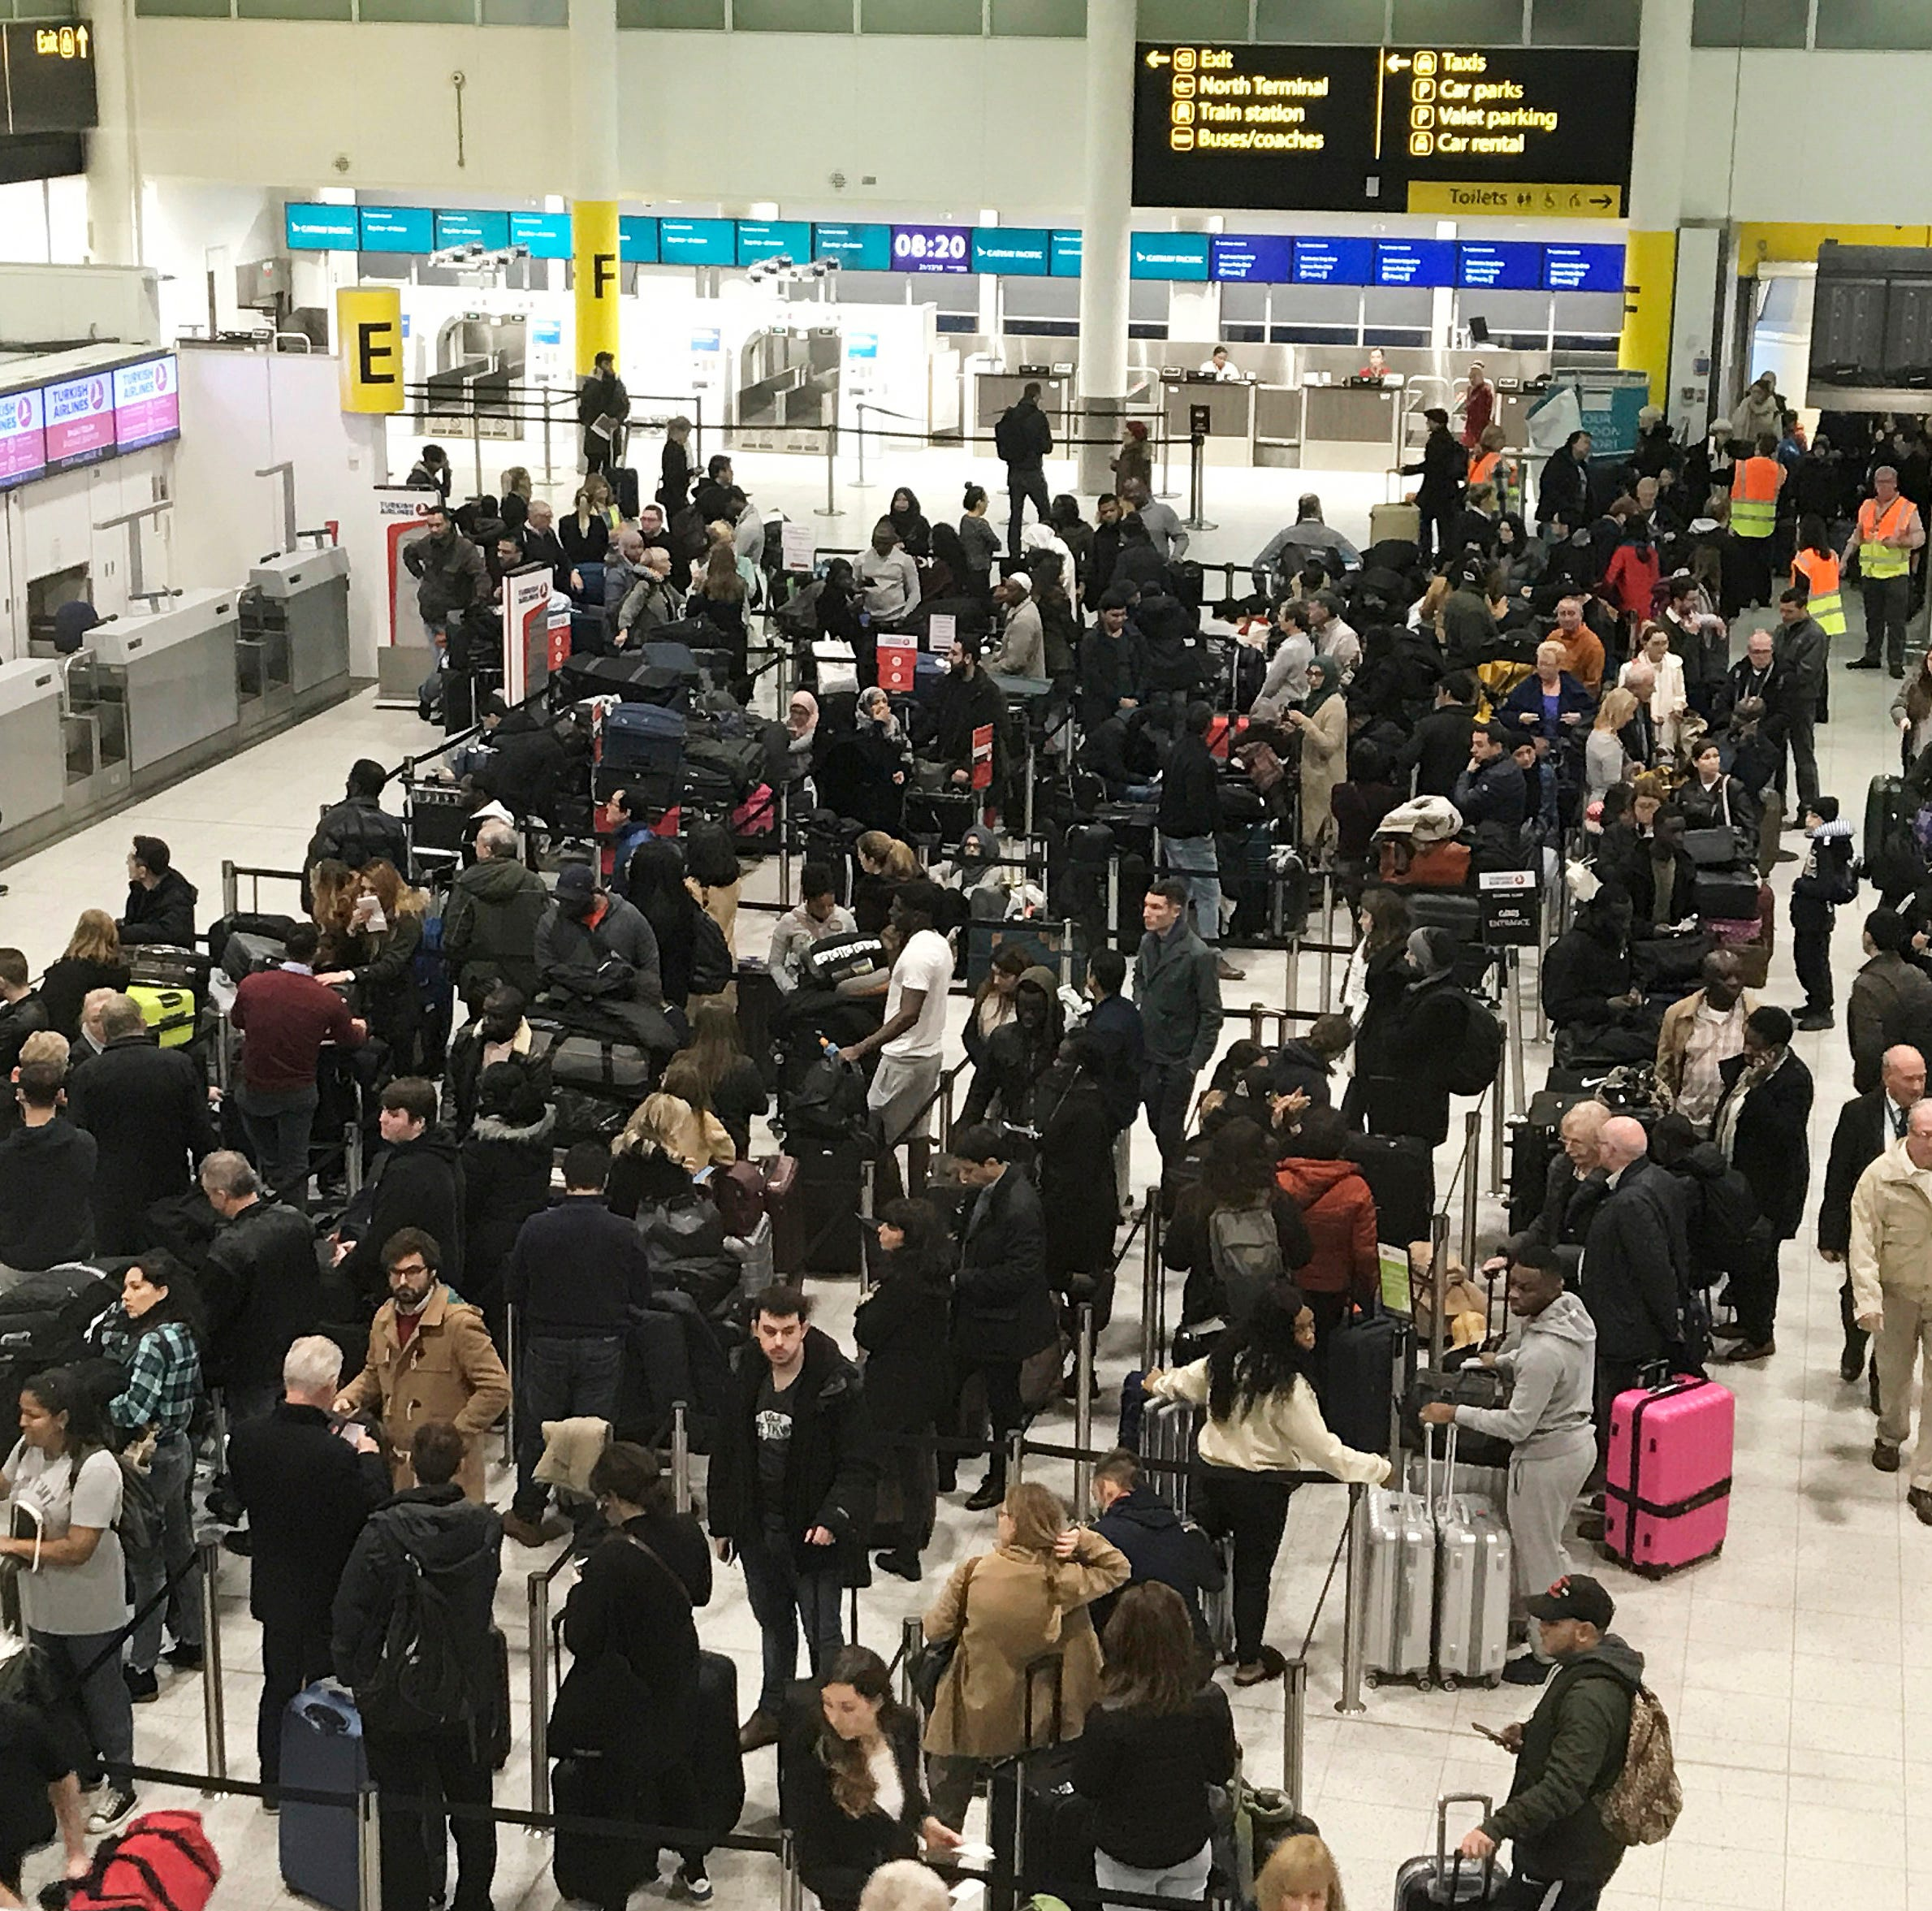 FILE - In this Dec. 21, 2018, file photo, passengers wait to check in at Gatwick Airport in England. Britain is extending the no-fly zone for drones around airports to 5 kilometers (3.1 miles) in an attempt to avert disruptions like the December groundings of flights at Gatwick Airport. (AP Photo/Kirsty Wigglesworth, File) ORG XMIT: NYHK202